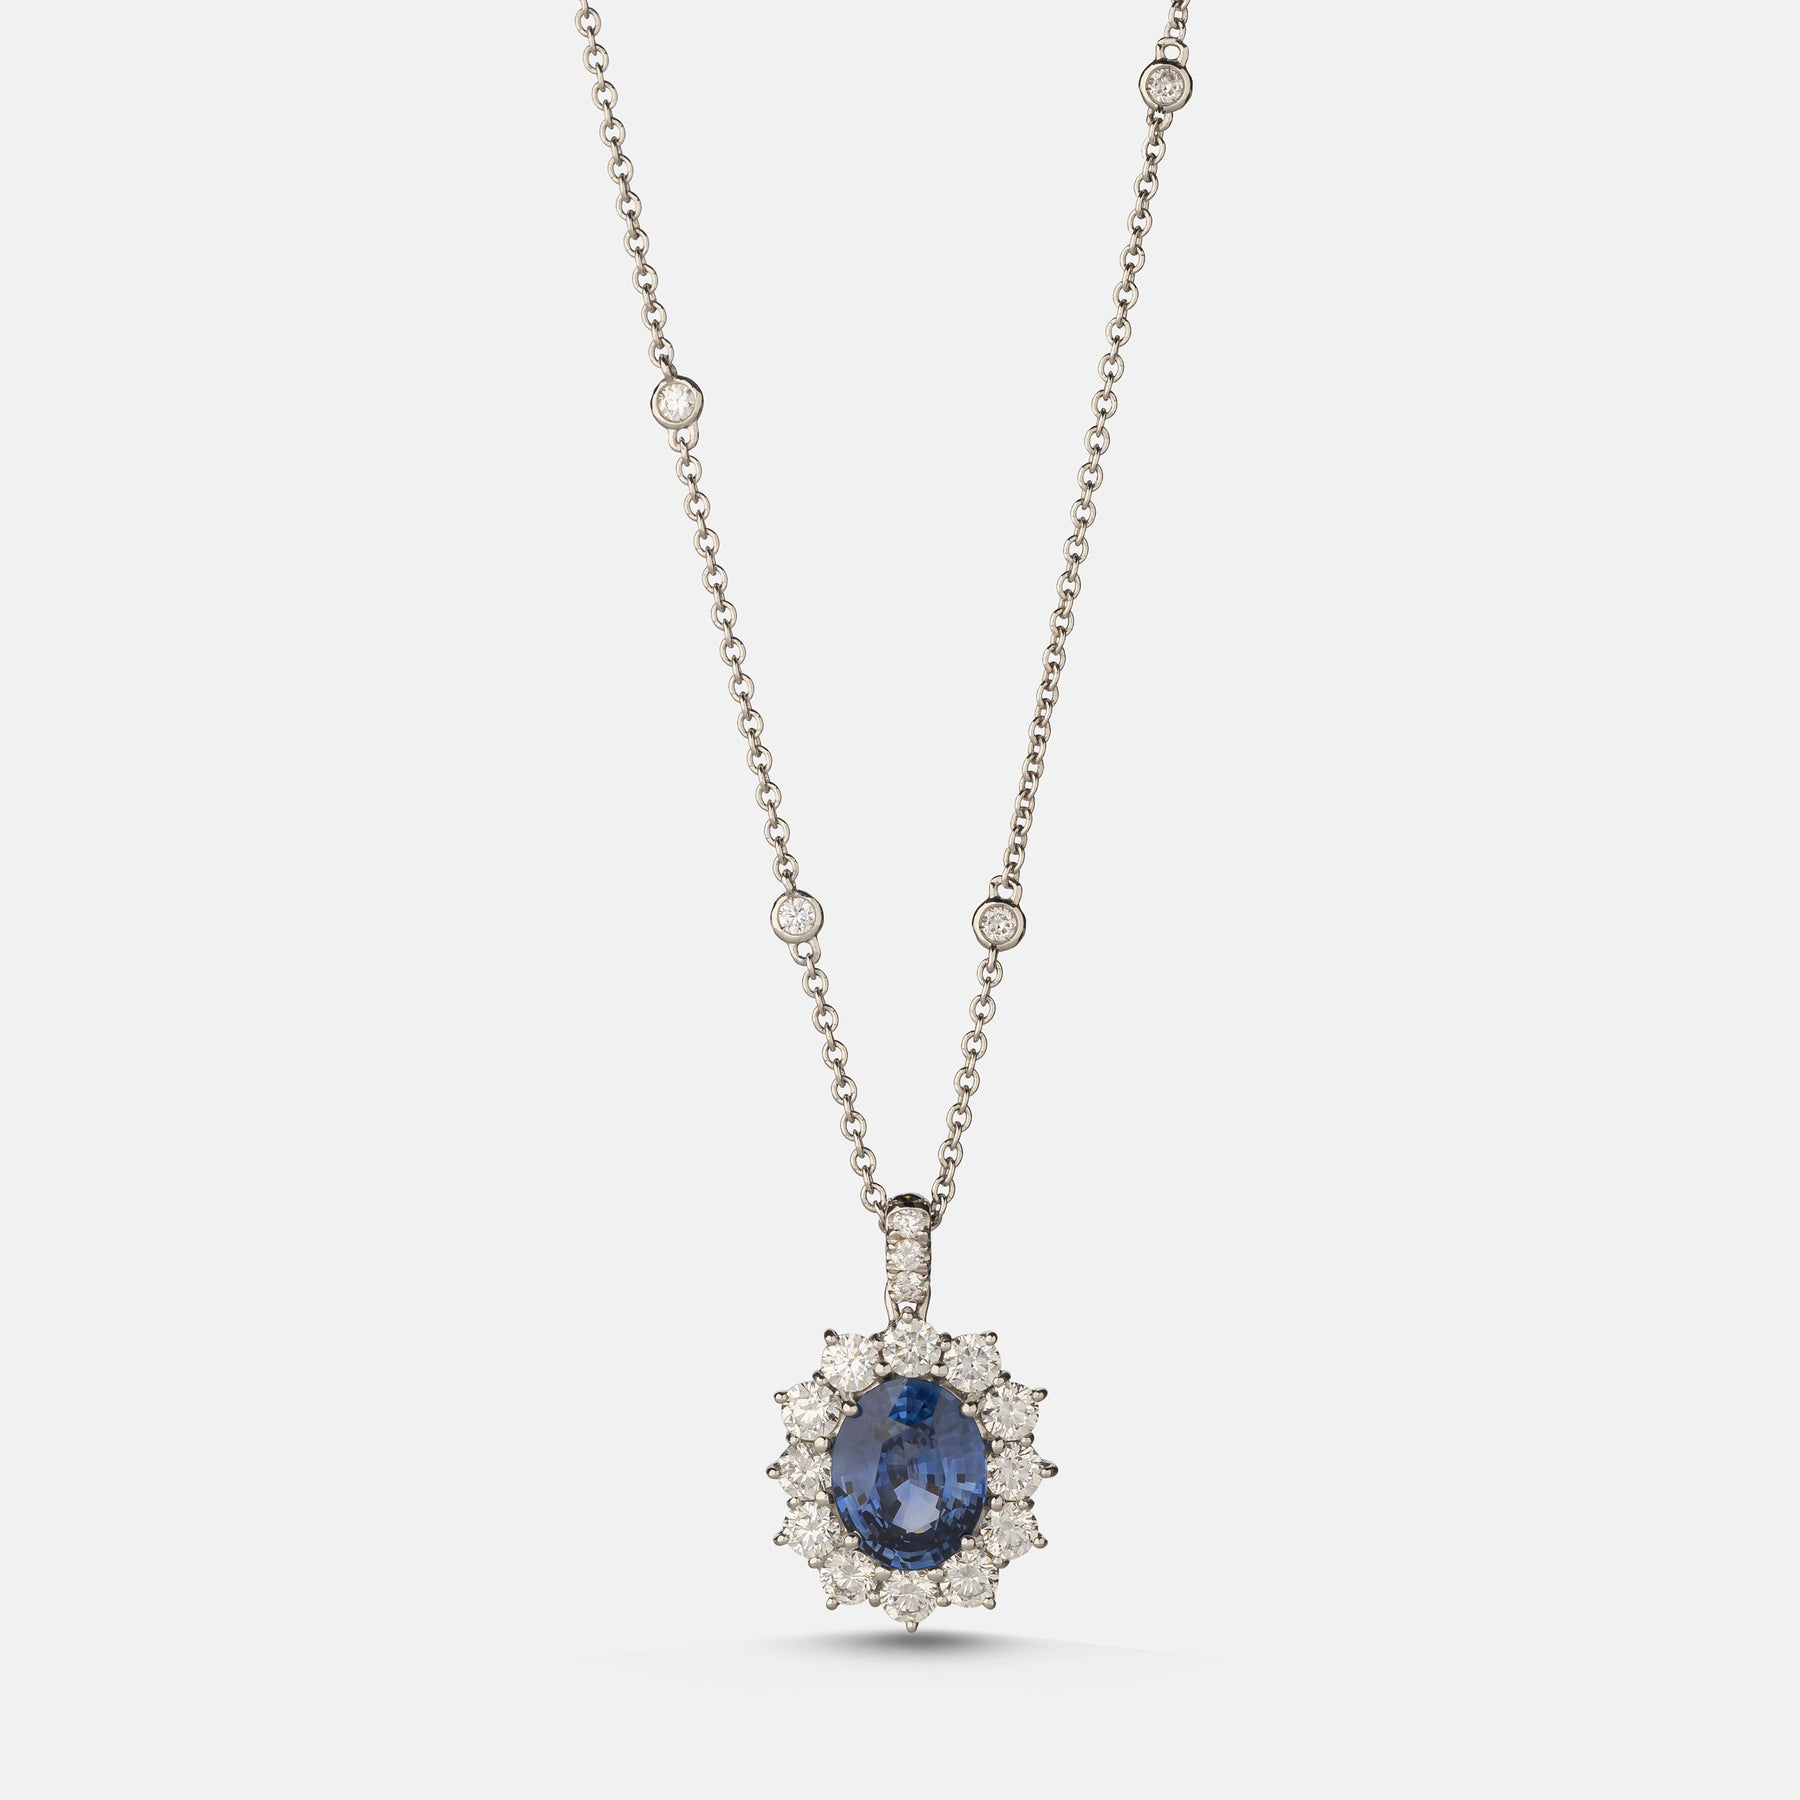 3.39ct Oval Sapphire Pendant,<br> 18ct White Gold Chain